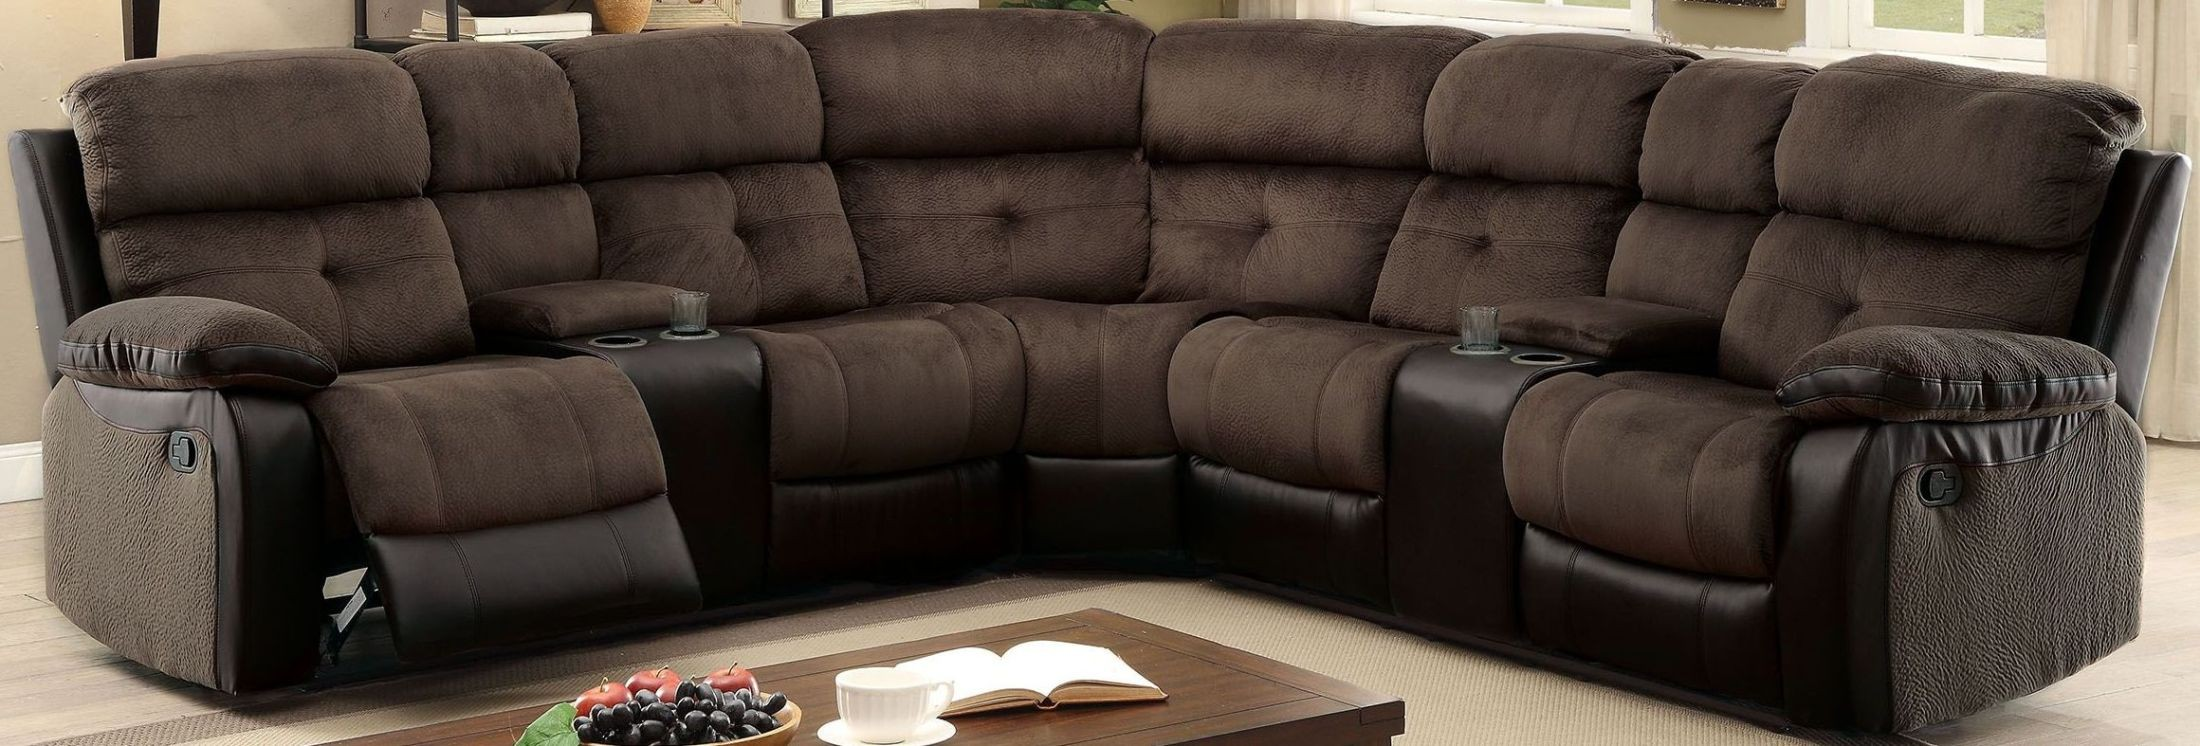 100 berkshire reclining sectional sofa in american made lea